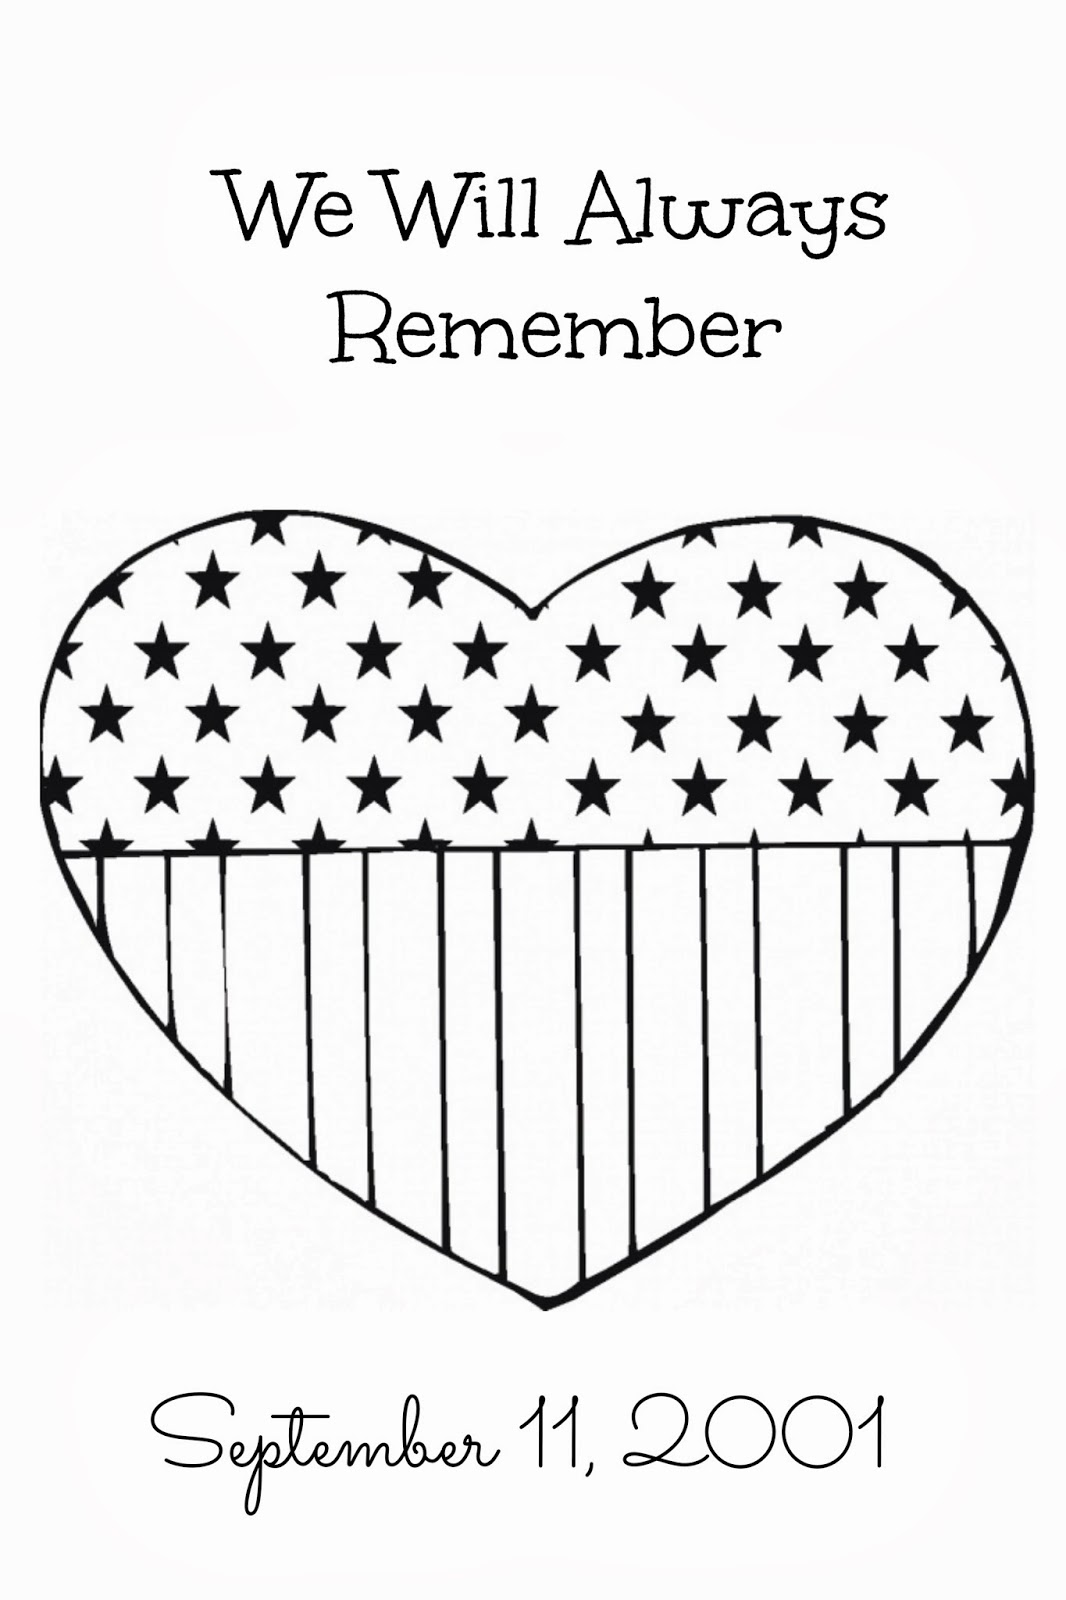 Nearly handmade talking about september 11th with kids for September 11 coloring pages